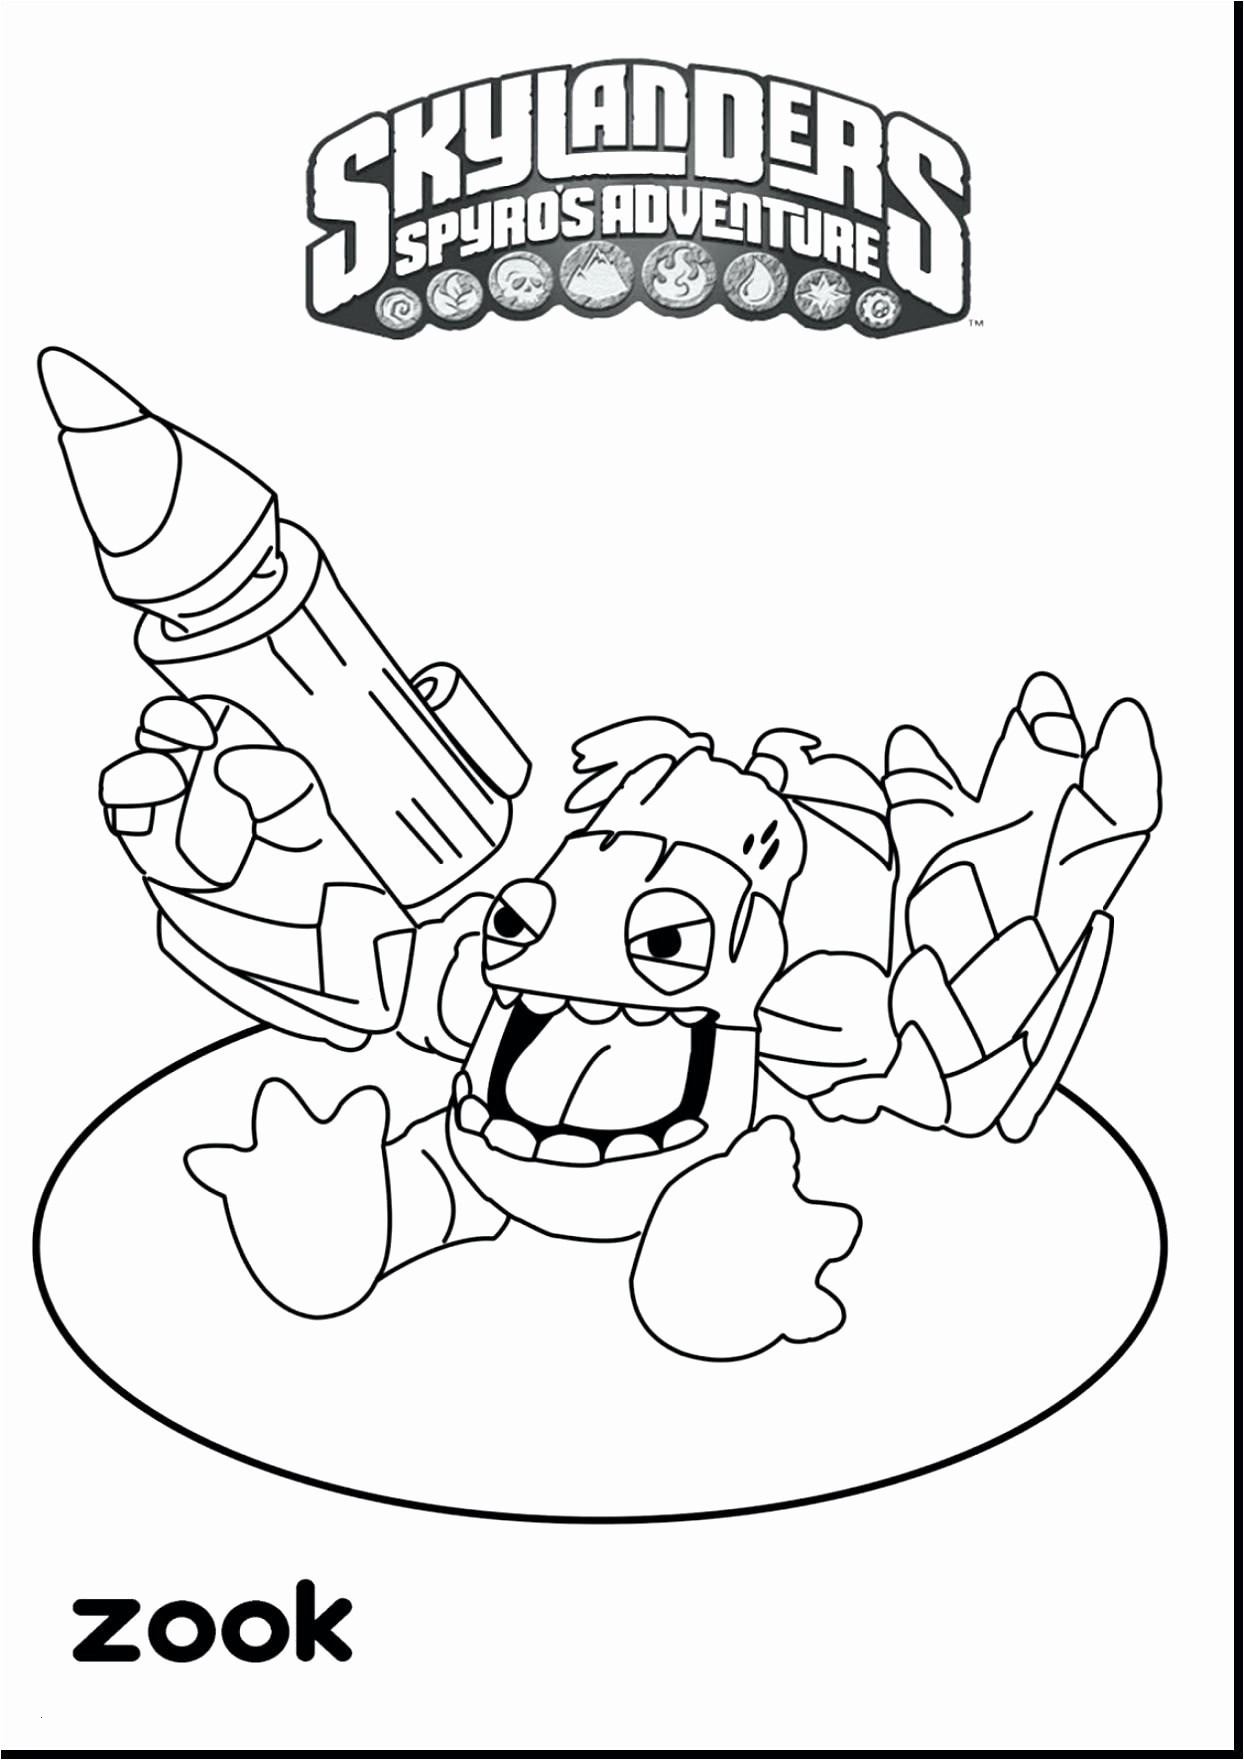 Firefighter Coloring Pages for Preschoolers  Printable 12e - To print for your project